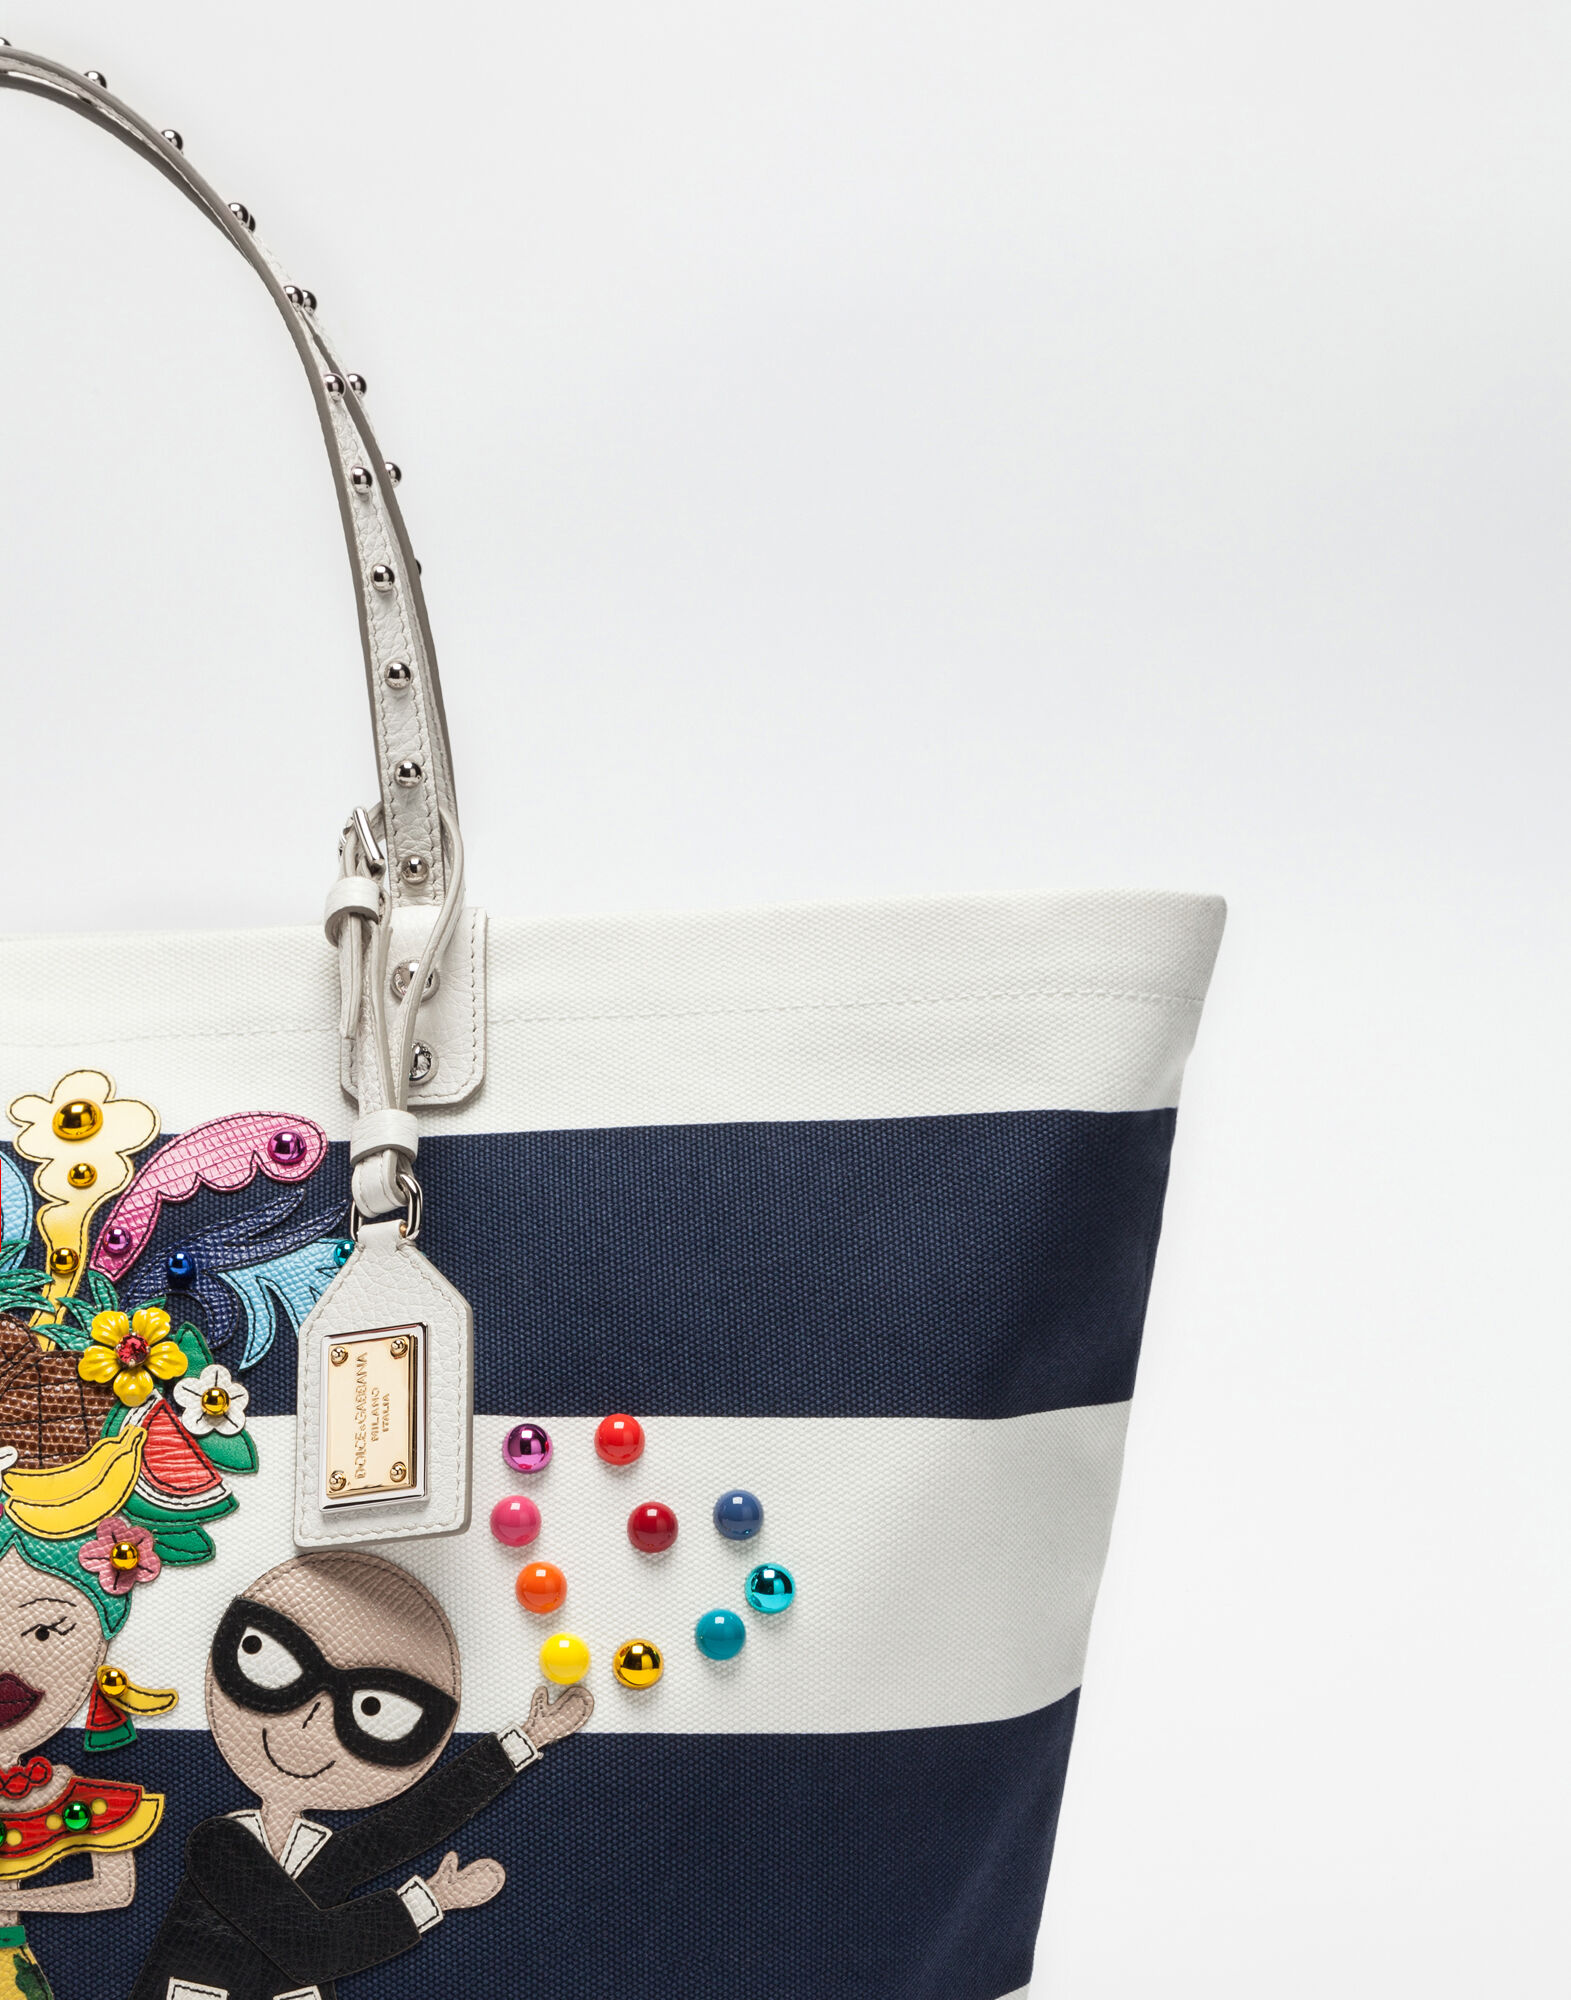 Dolce&Gabbana BEATRICE BAG IN PRINTED CANVAS WITH PATCHES OF THE DESIGNERS